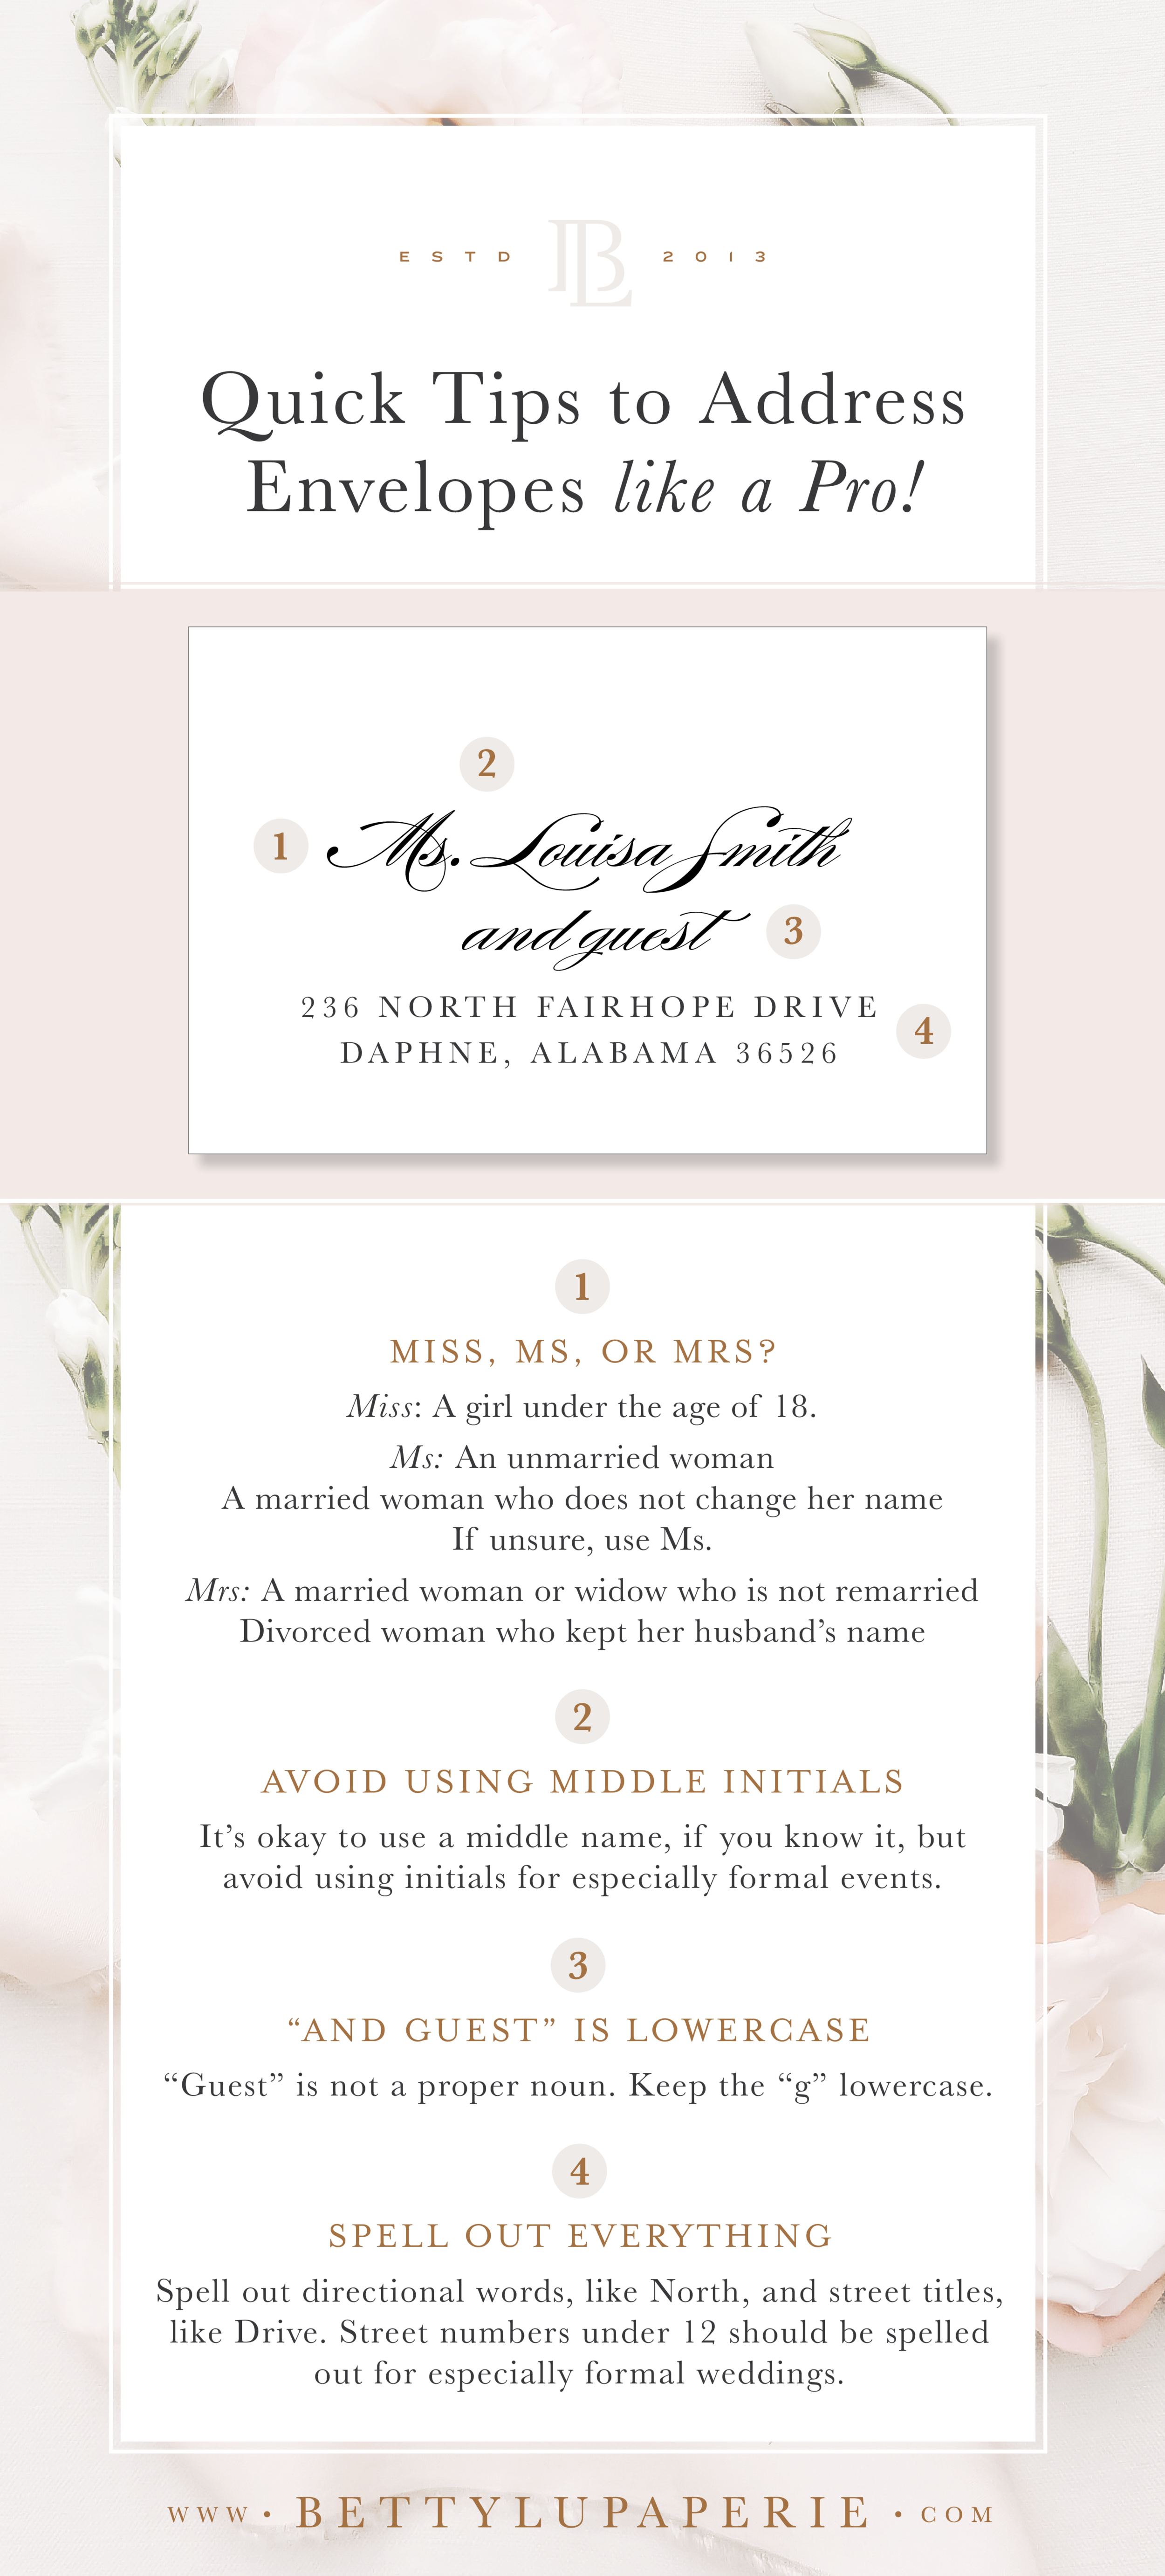 How To Address Wedding Invitation Envelopes Like A Pro Floral